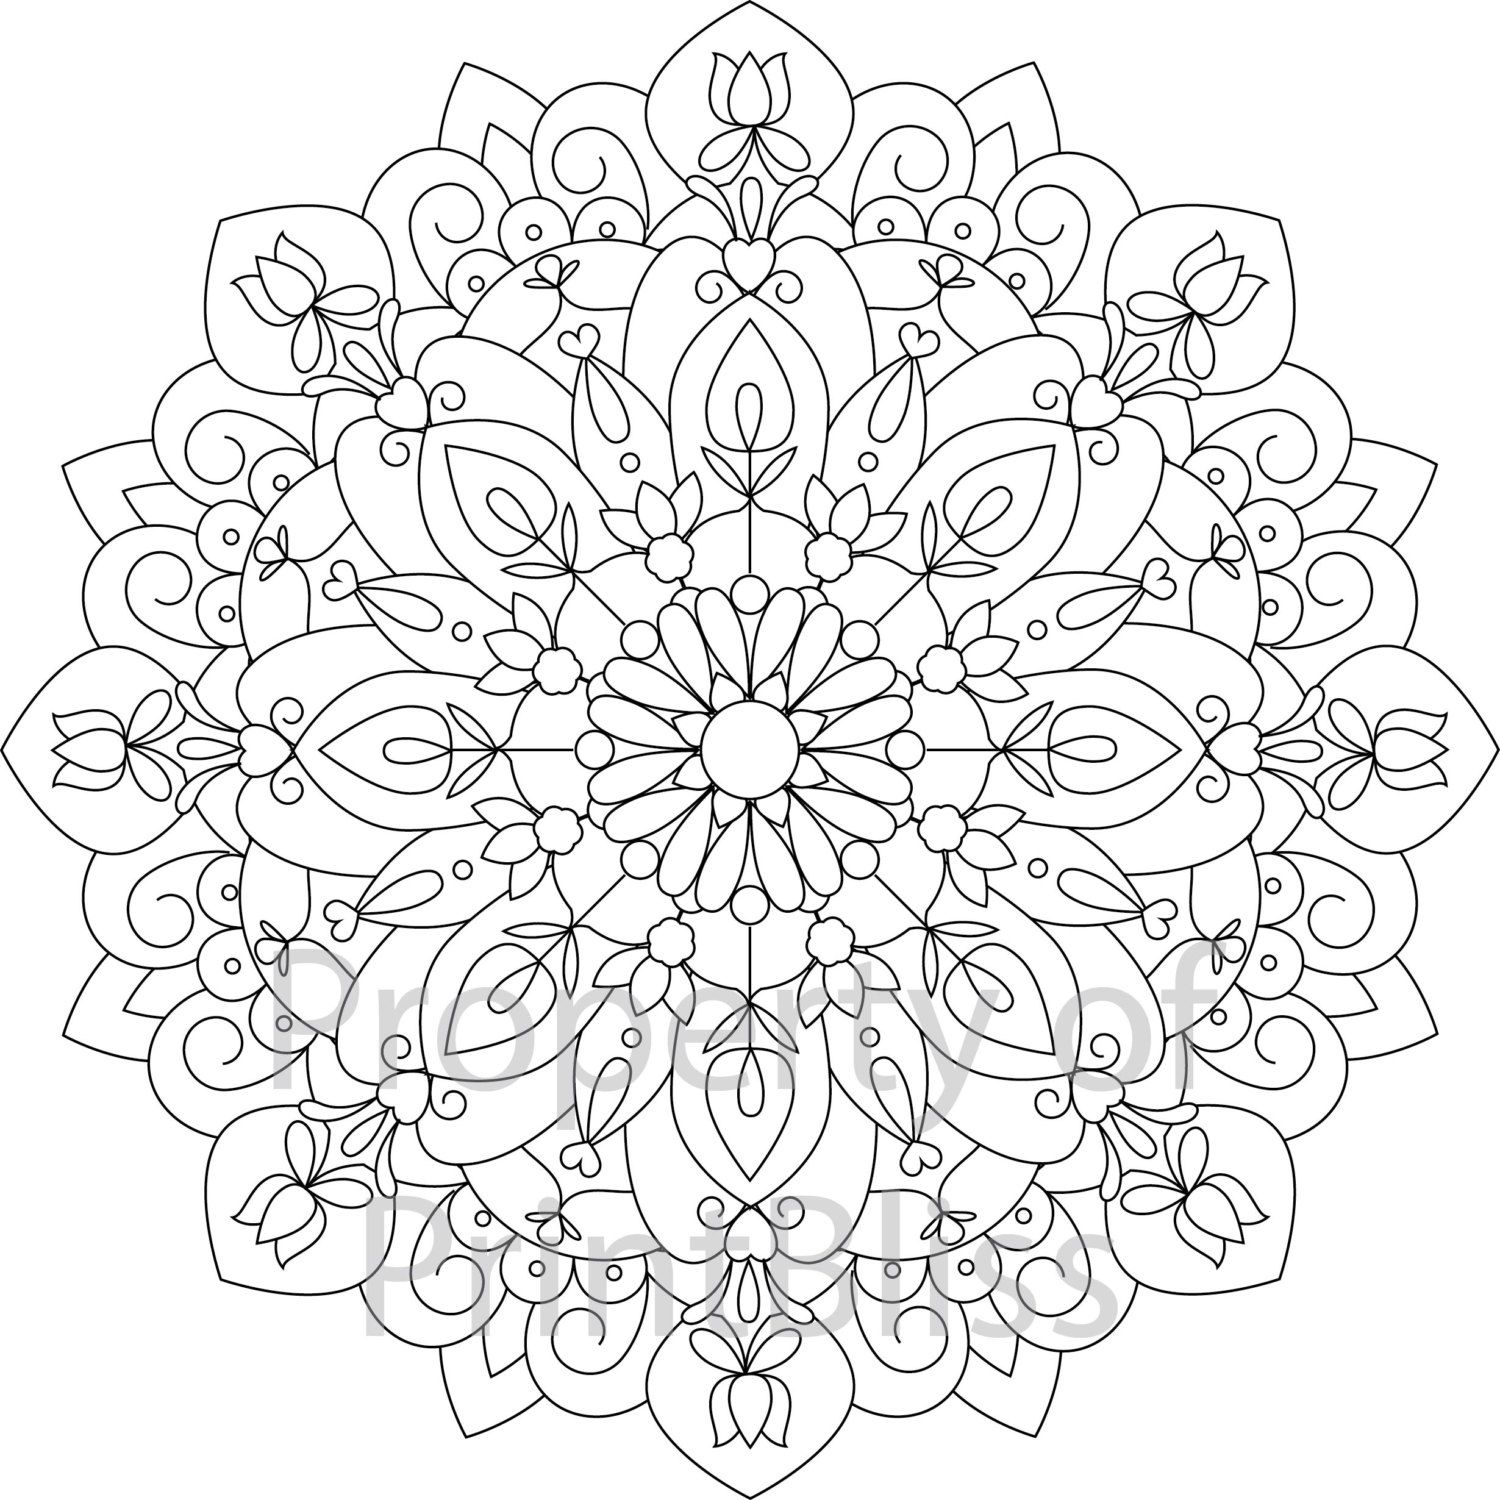 10 Flower Mandala Printable Coloring Page By Printbliss